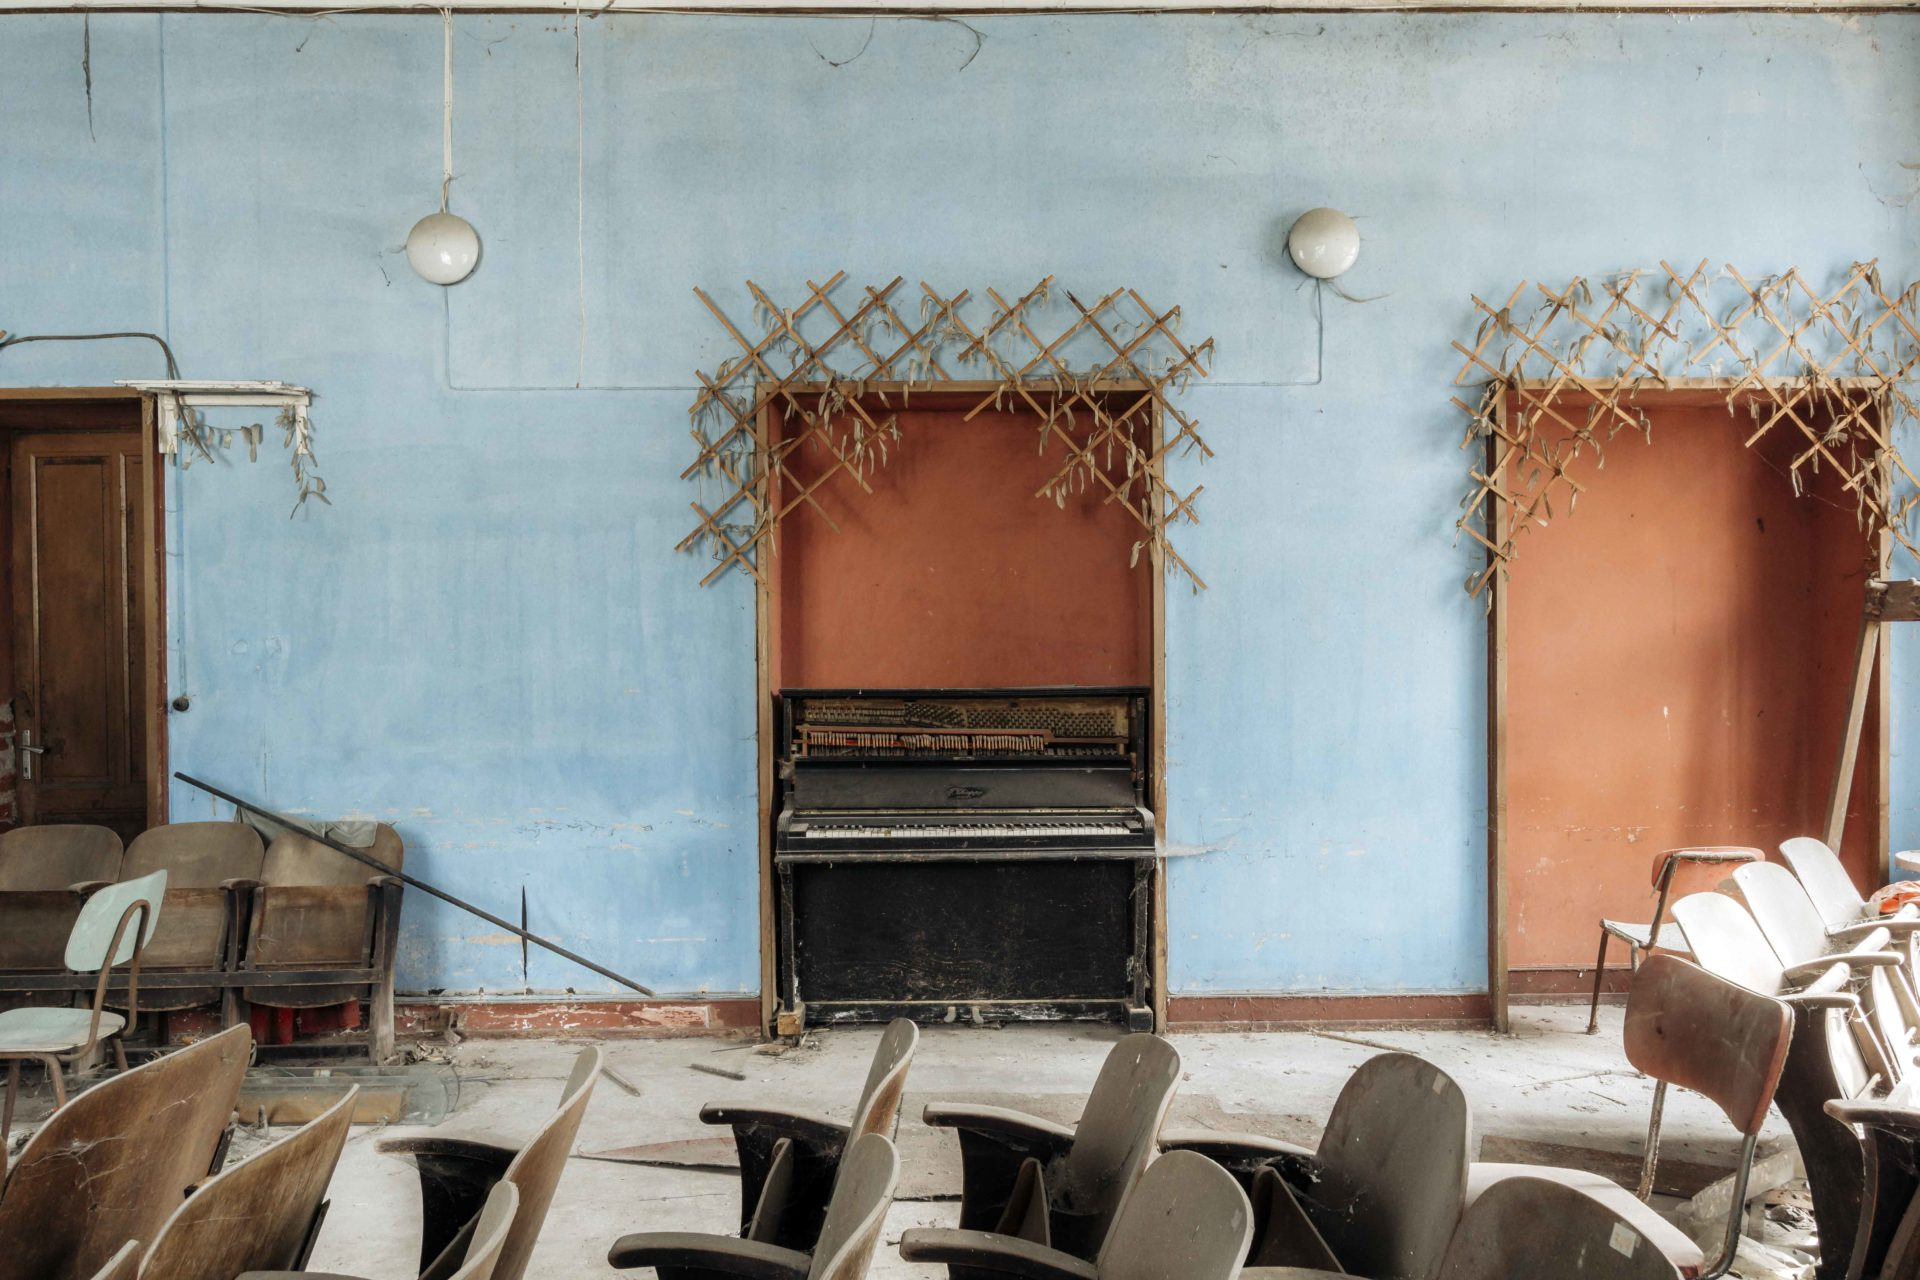 abandoned piano in Europe, Romain Thiery fine art artist photographer, requiem pour pianos series